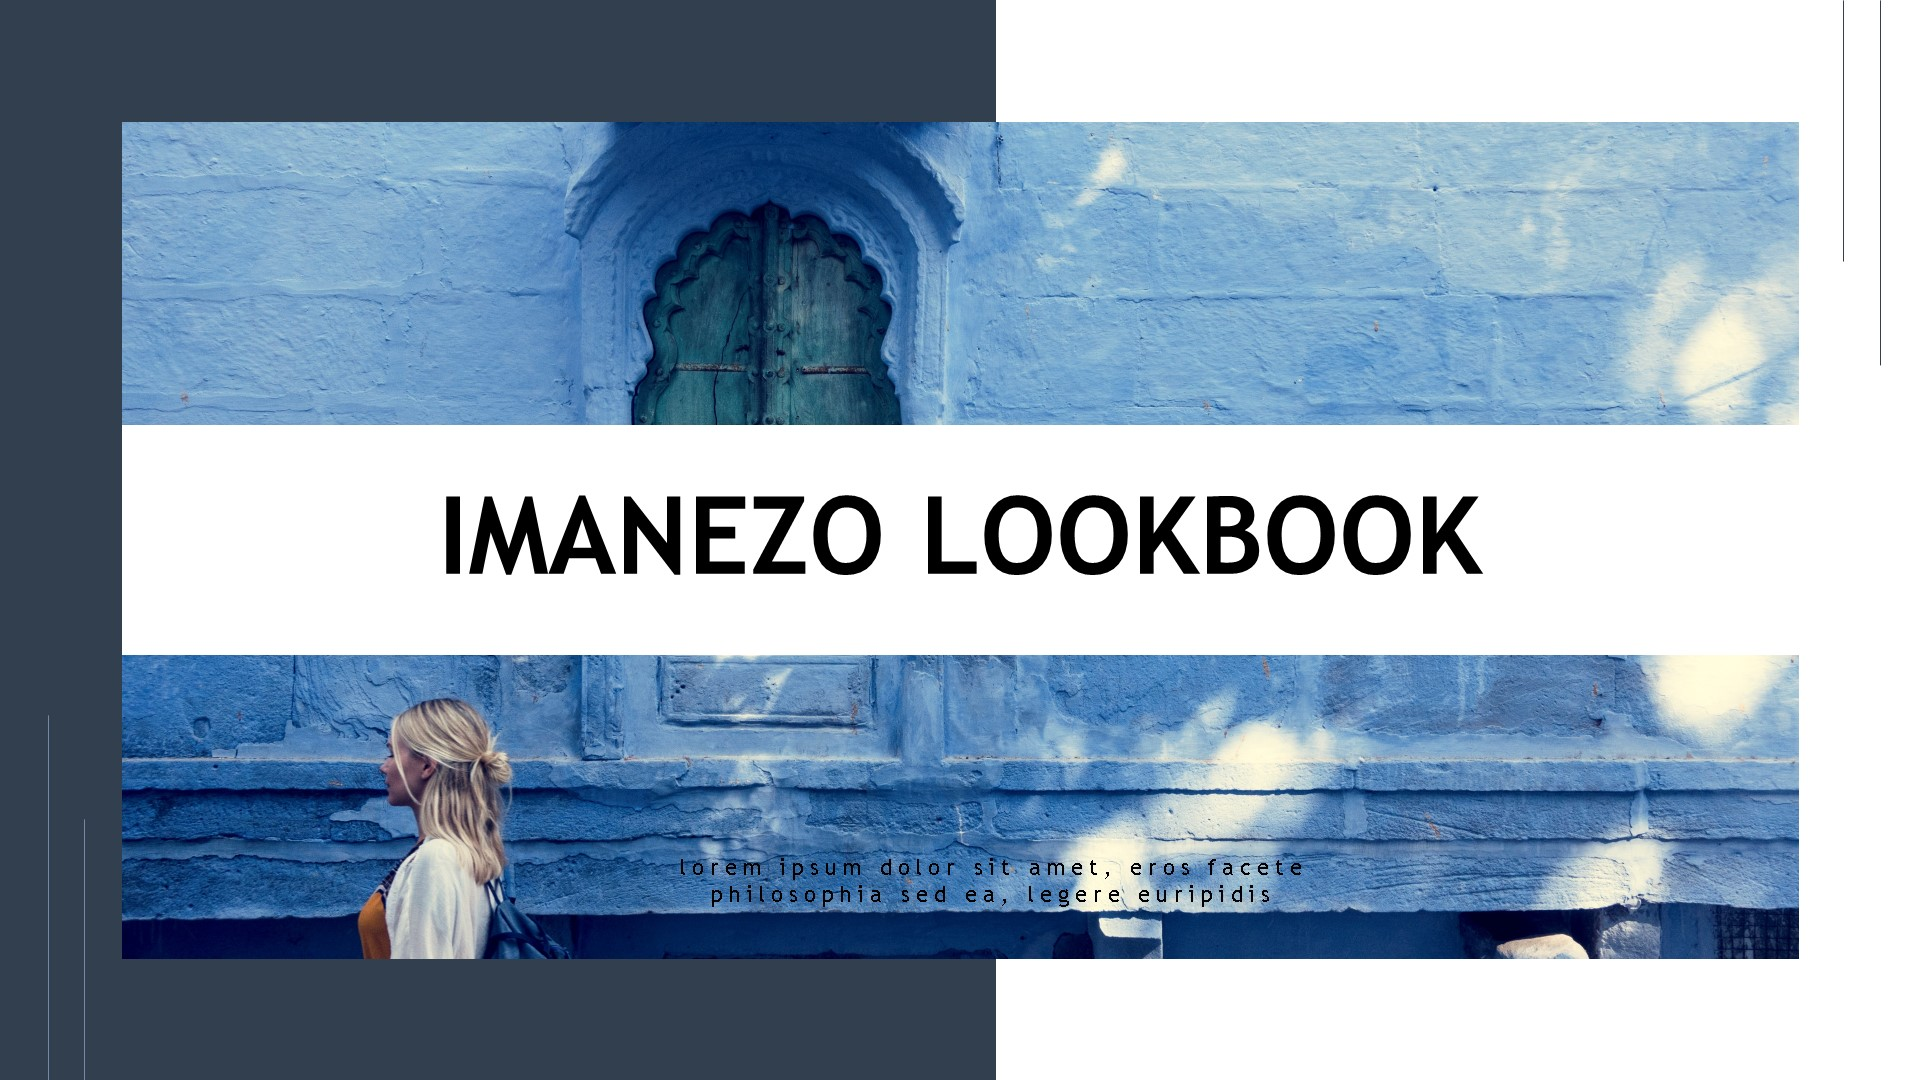 Imanezo - Lookbook Presentaion PowerPoint sablon 83911